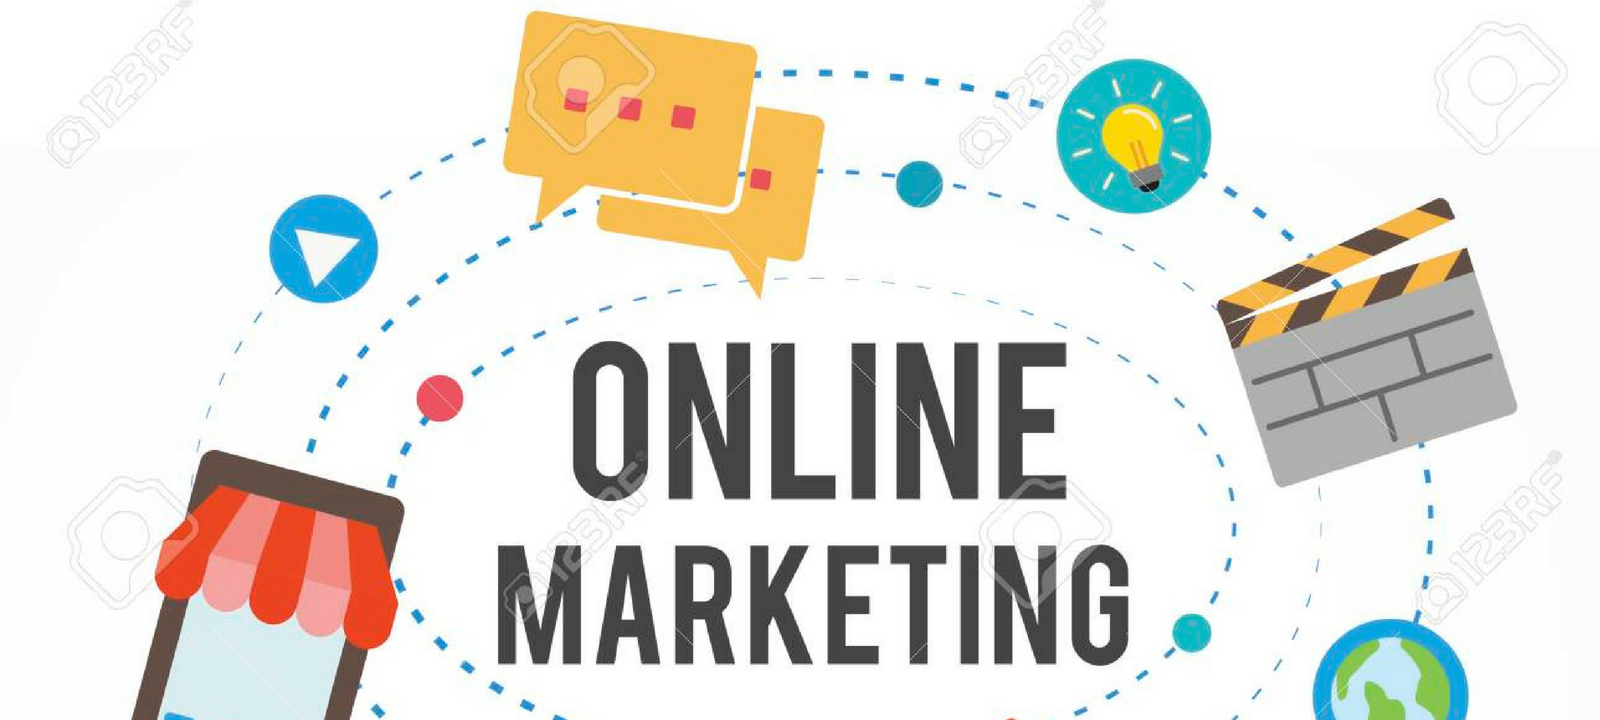 Best Digital Marketing Company in Goa, India, provides the best digital solutions to clients spread across India. One of the veterans and rated among the top digital marketing companies in Goa. Digital Marketing Company In Goa, India: Digipitcher Agency is one of the Best Digital Marketing companies in Goa. Ranked among the Top.